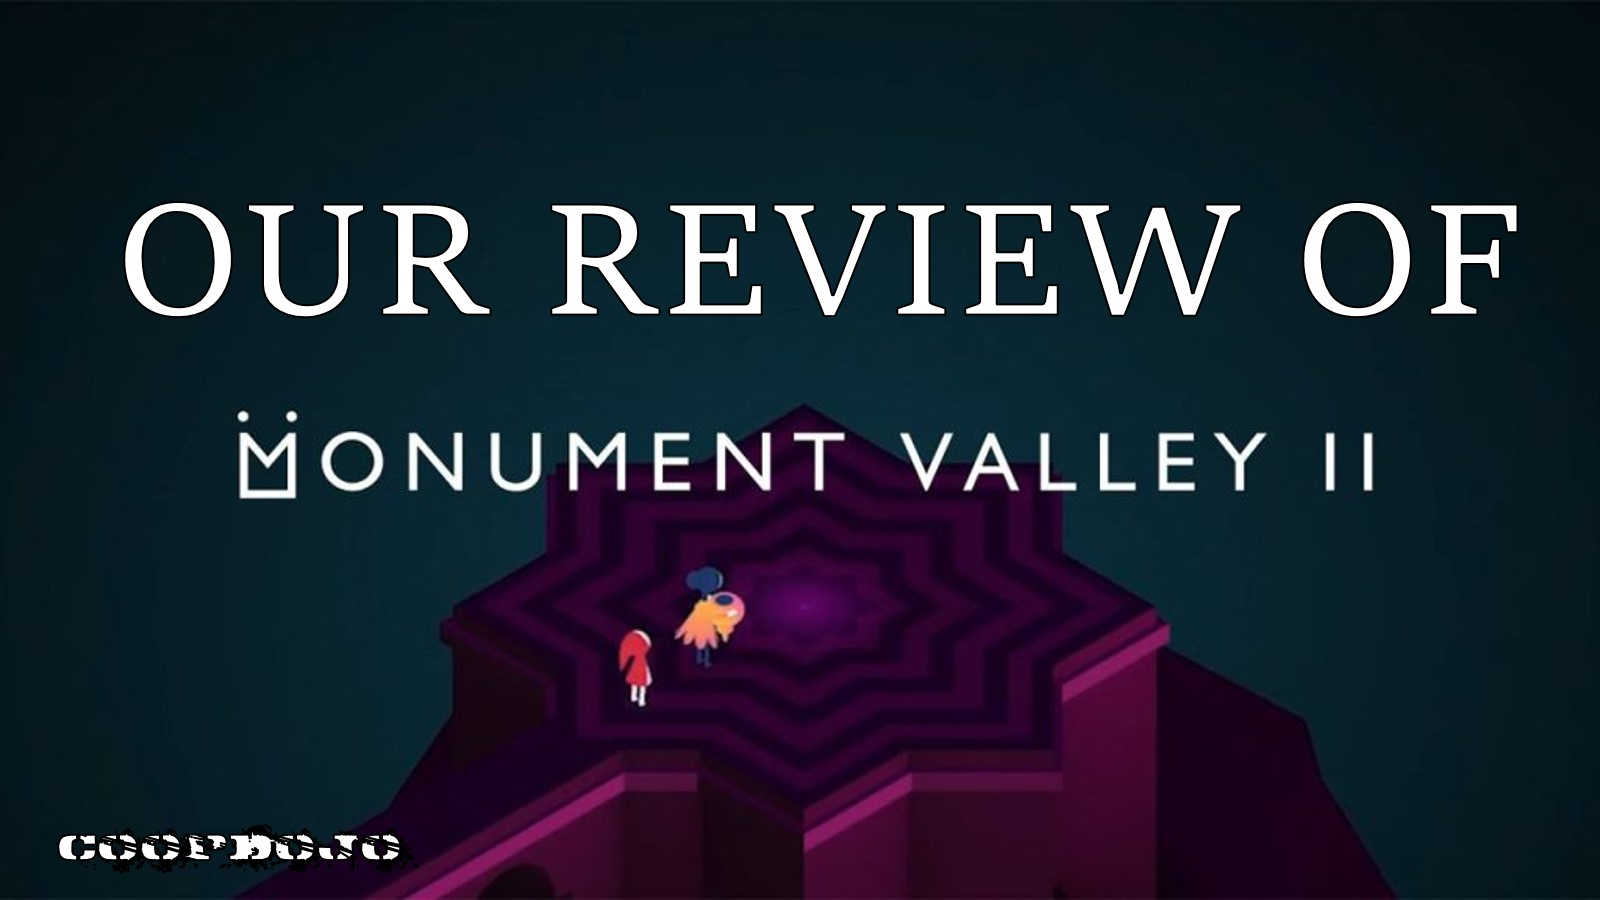 Our Review Of Monument Valley 2